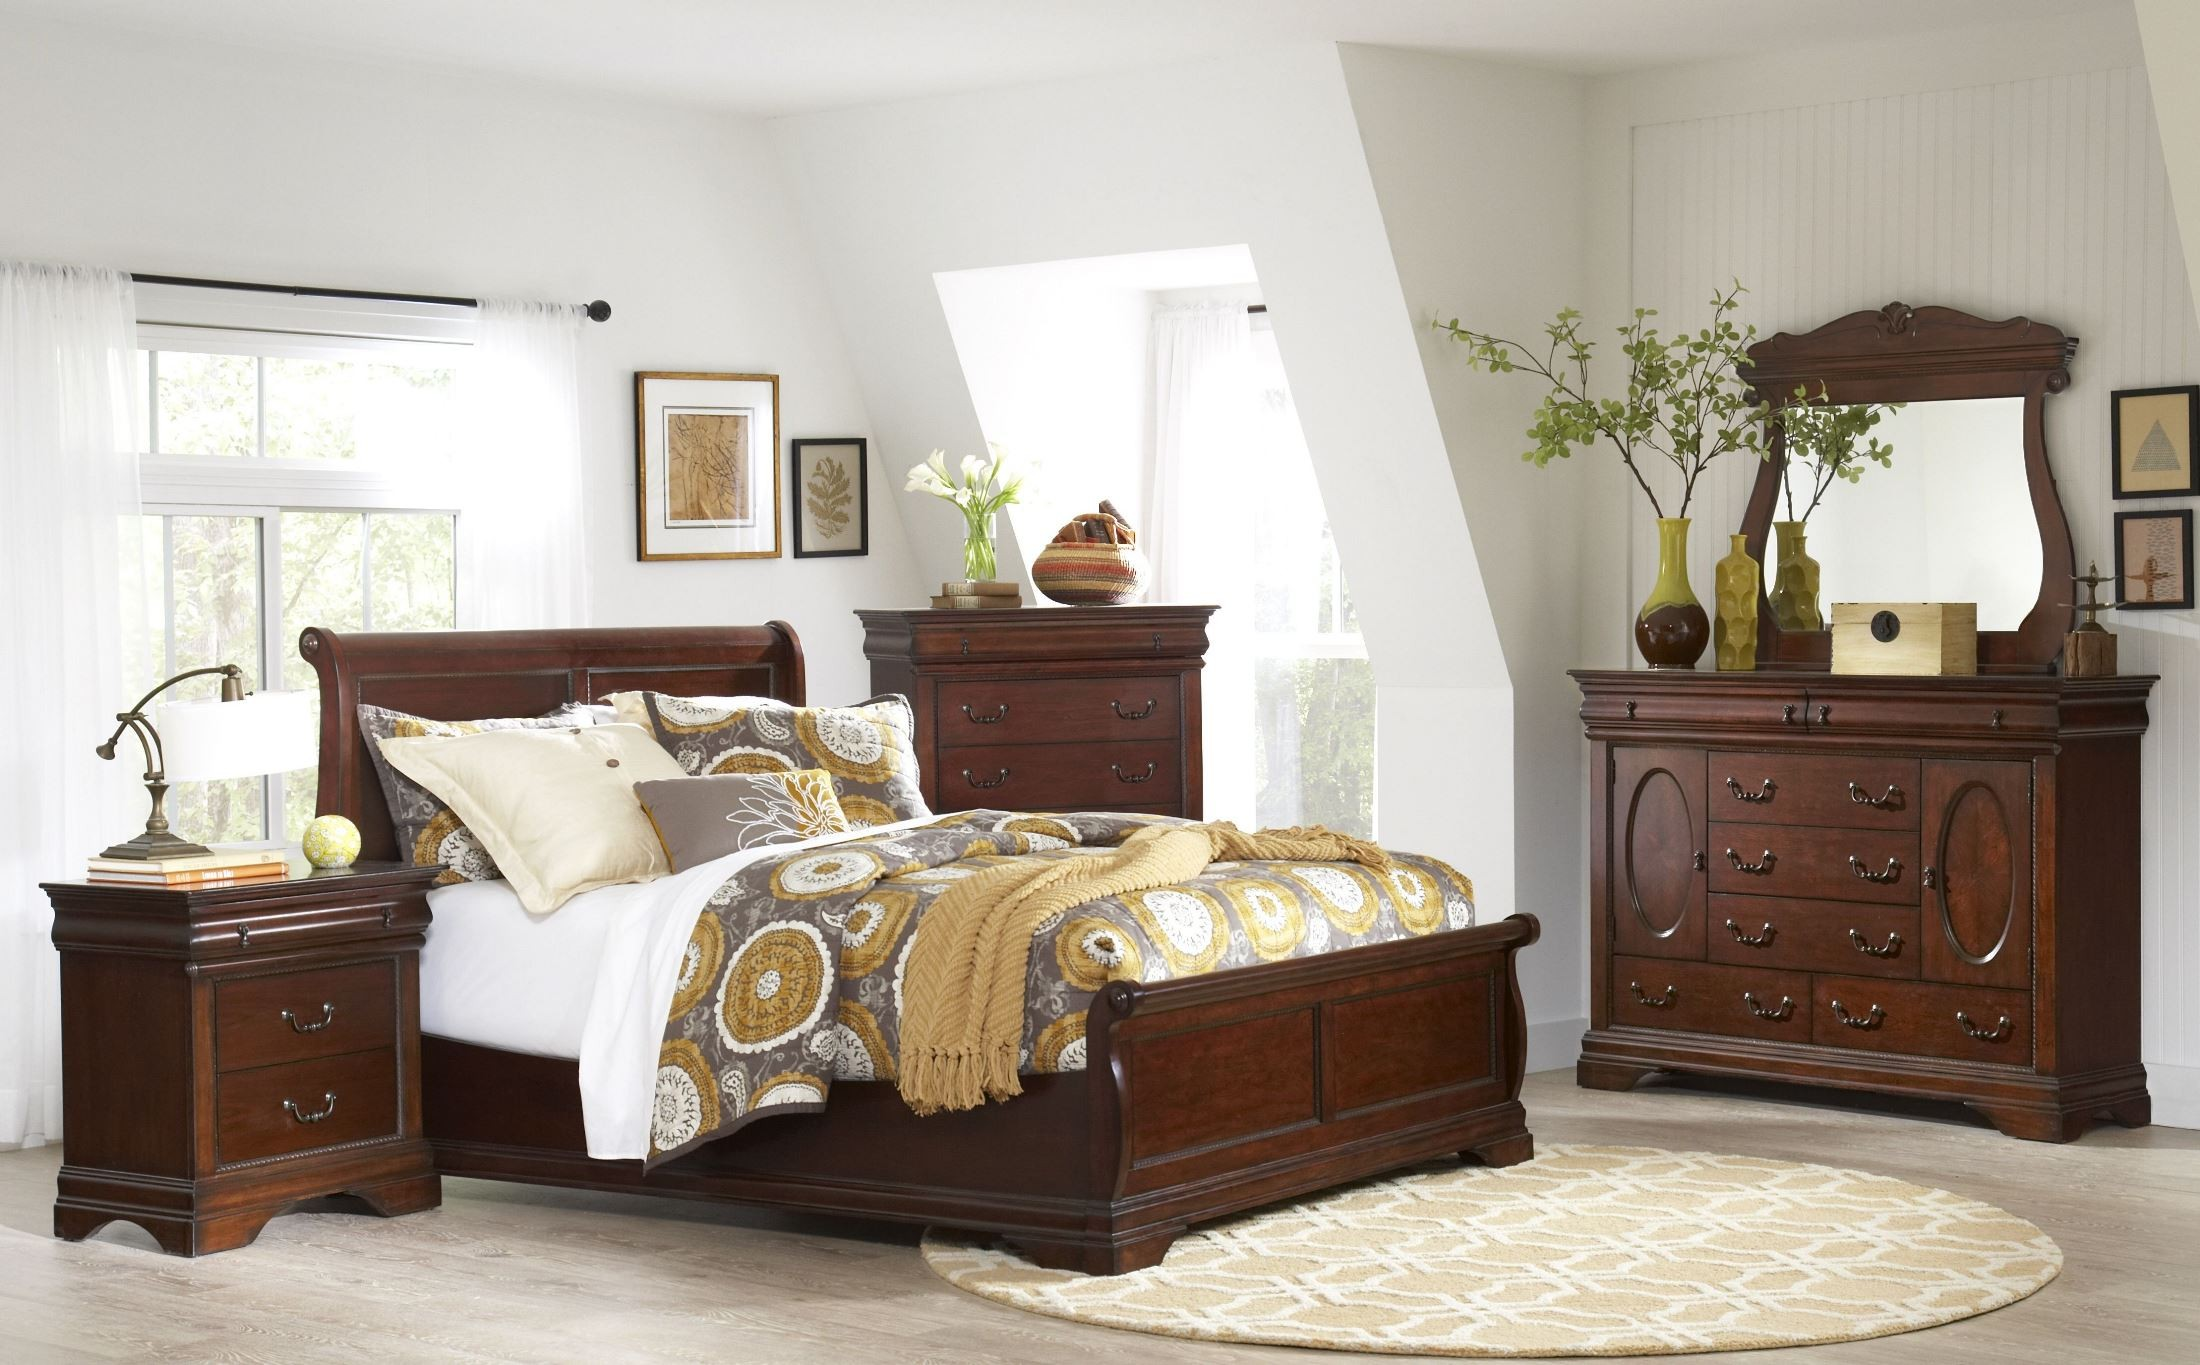 chateau vintage cherry panel bedroom set b4800 58h 58f 58r largo furniture. Black Bedroom Furniture Sets. Home Design Ideas